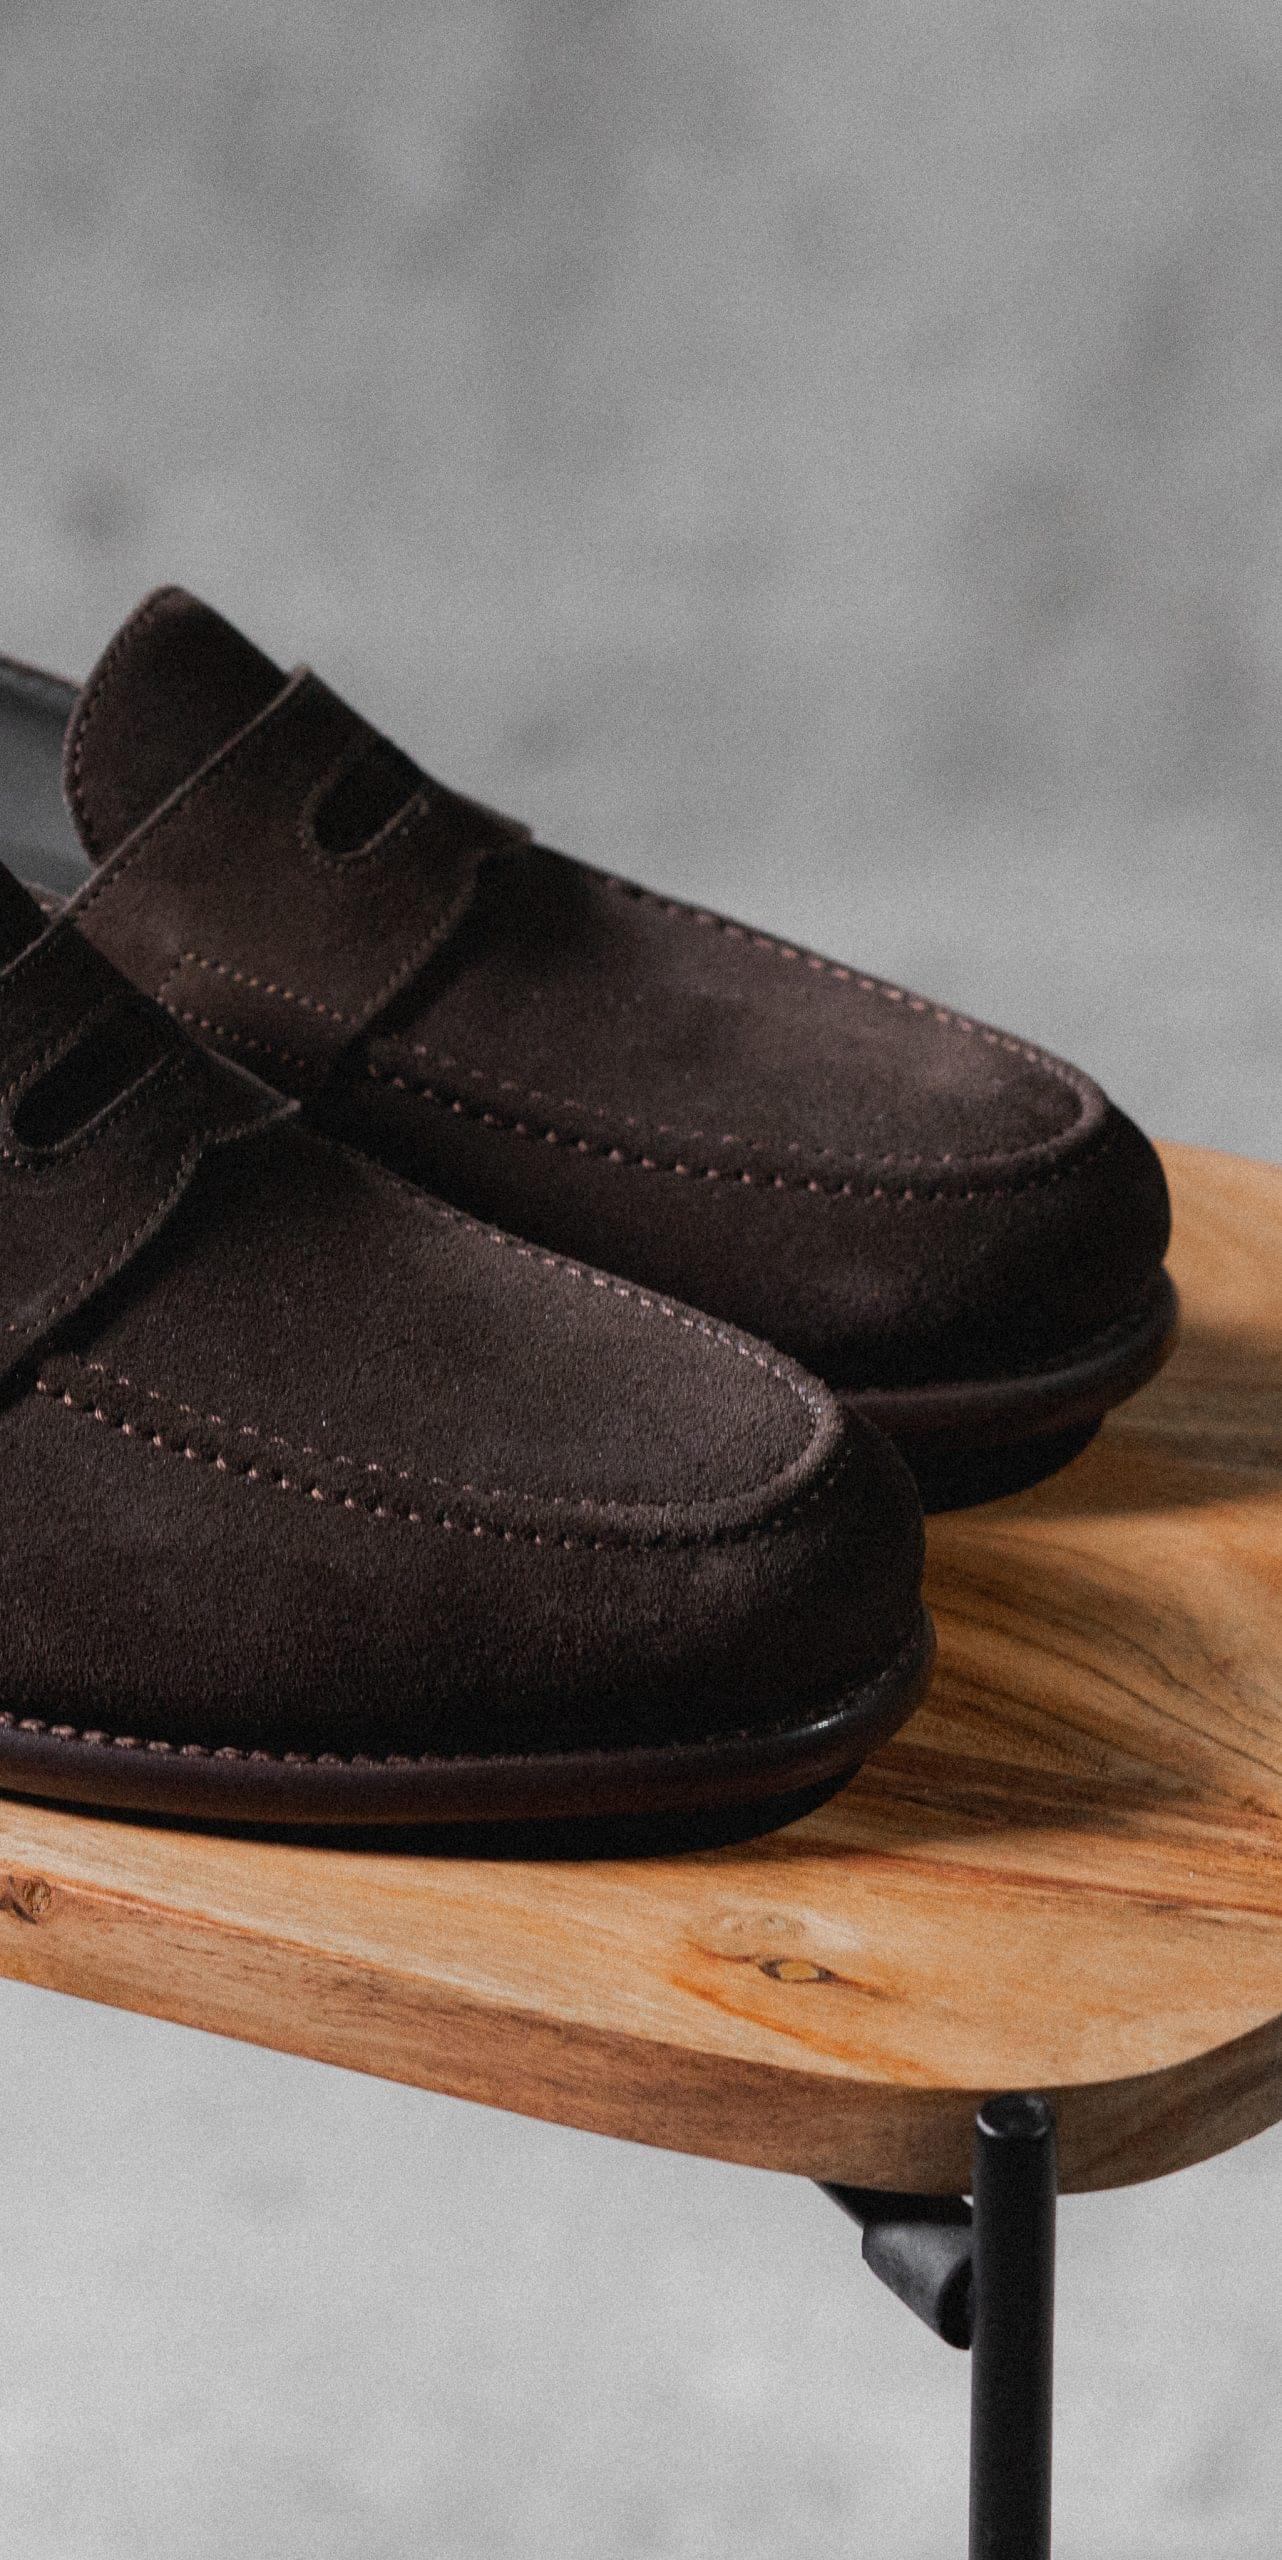 LOAFERS-MOCASINES-01-02-The-Seëlk-6